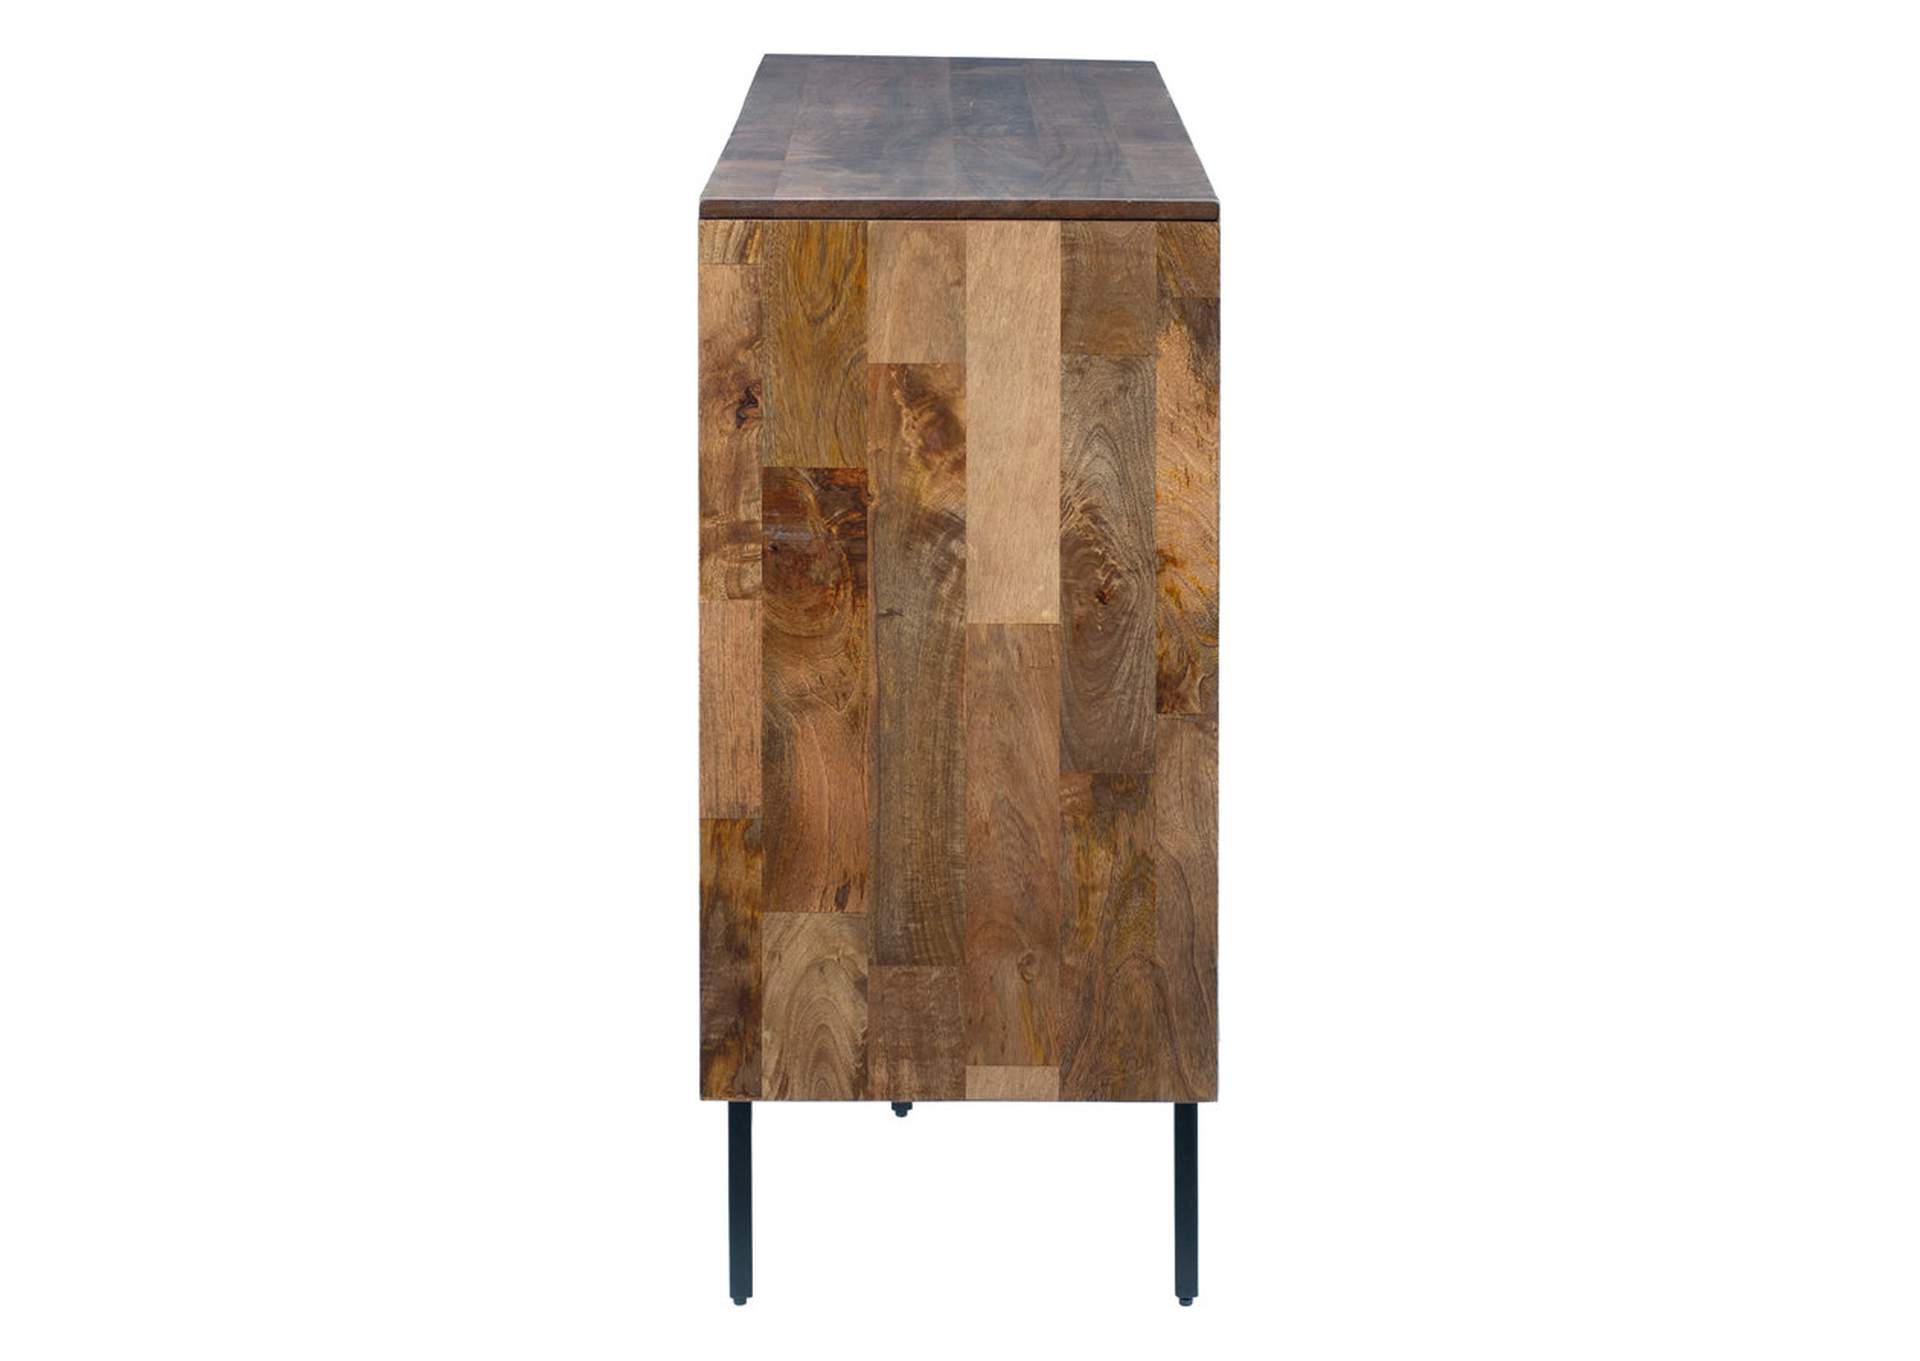 Prattville Accent Cabinet,Signature Design By Ashley